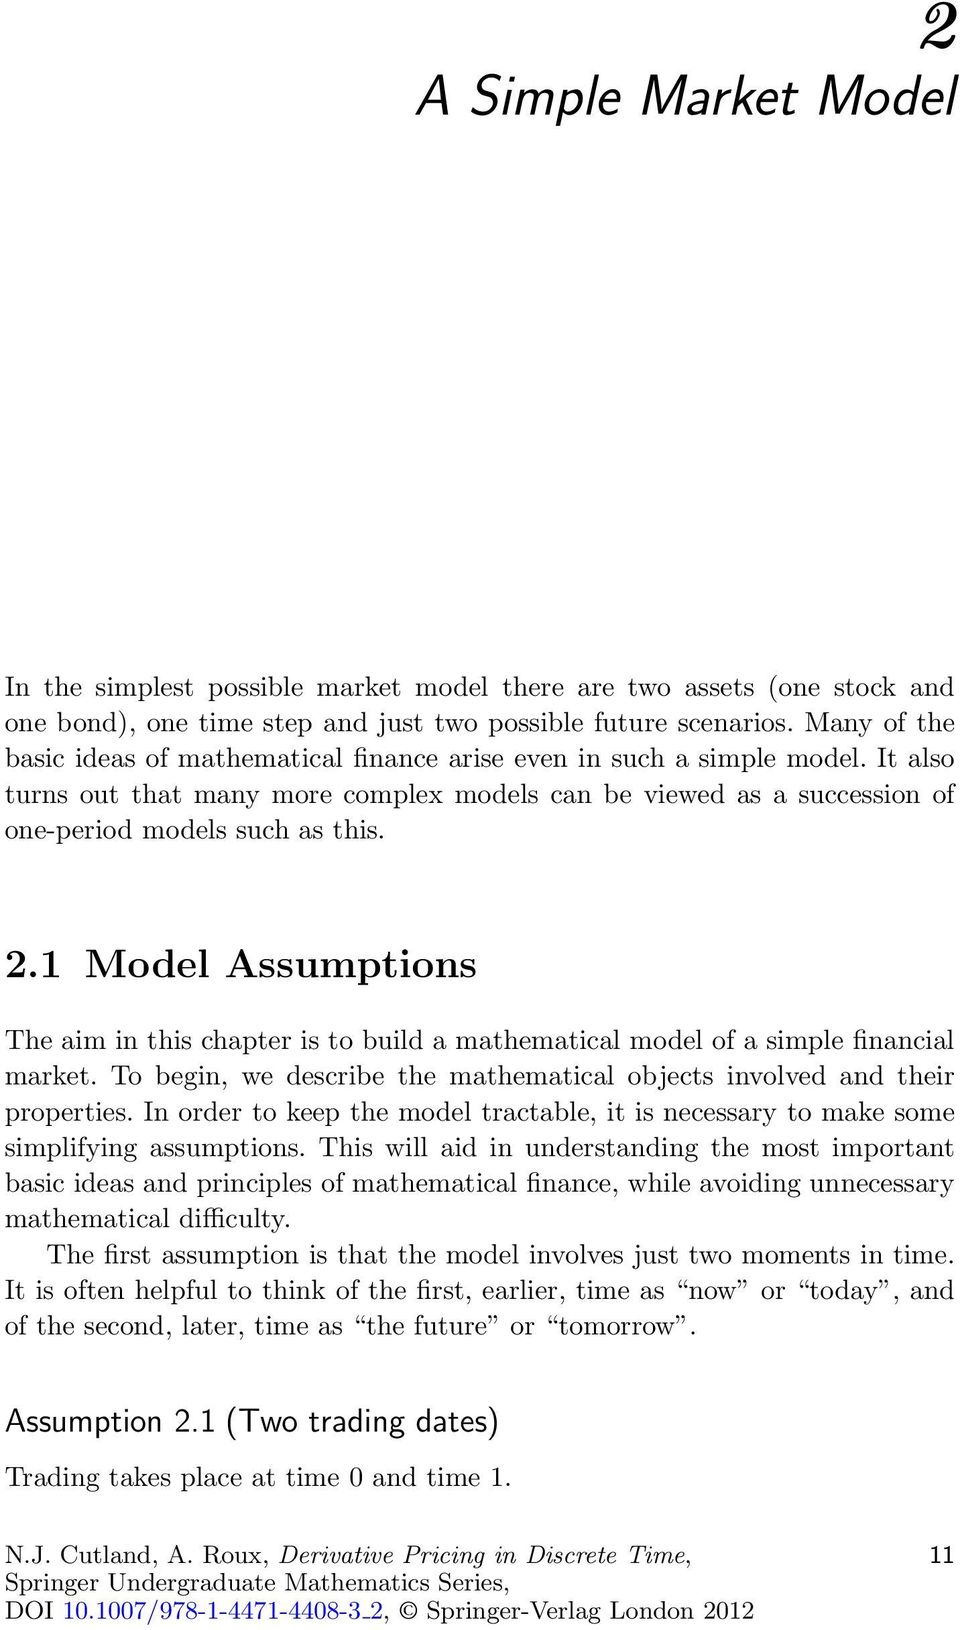 1 Model Assumptions The aim in this chapter is to build a mathematical model of a simple financial market. To begin, we describe the mathematical objects involved and their properties.